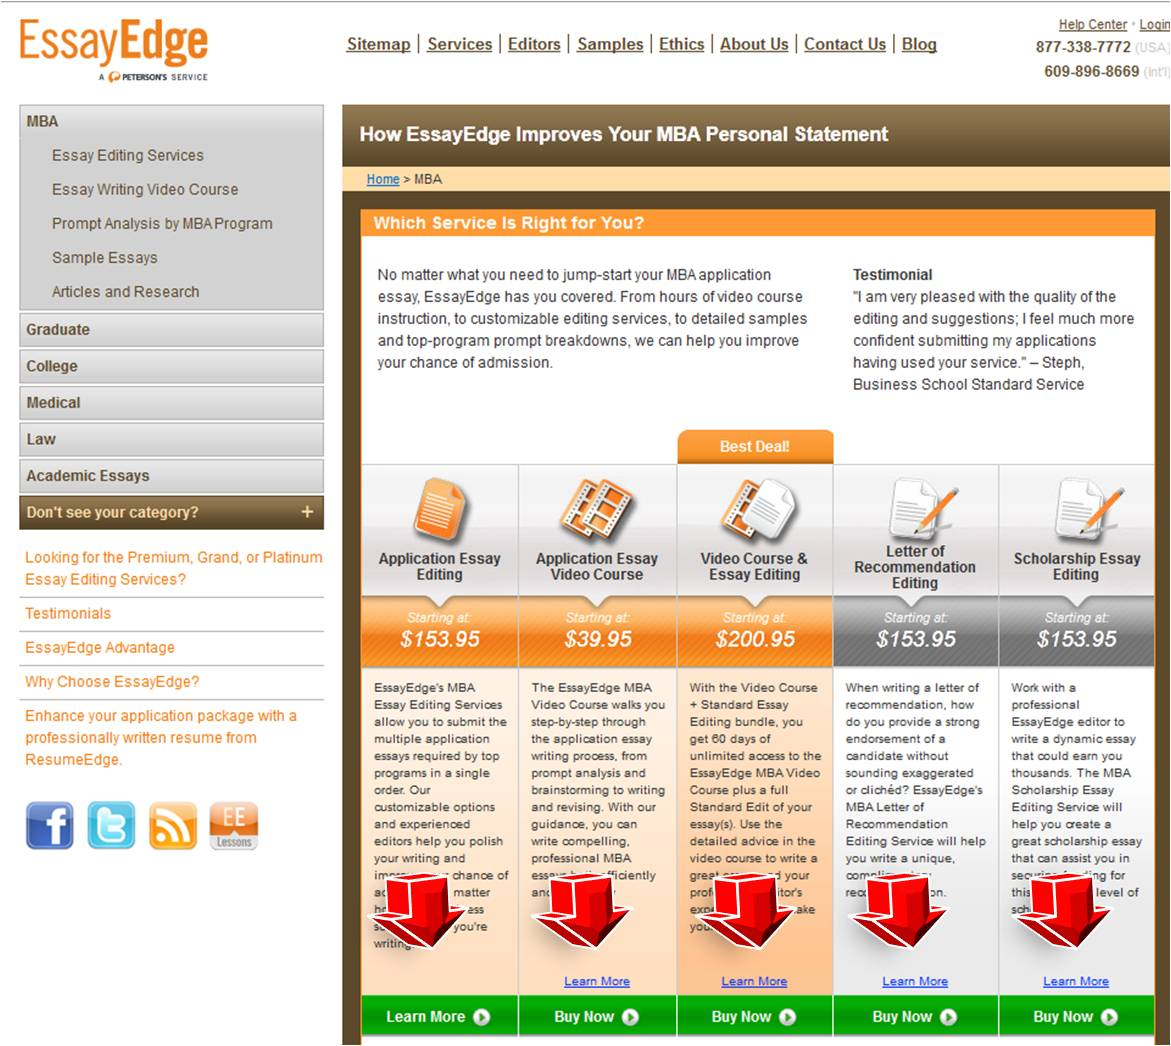 EssayEdge Coupons, Deals and Promo Codes